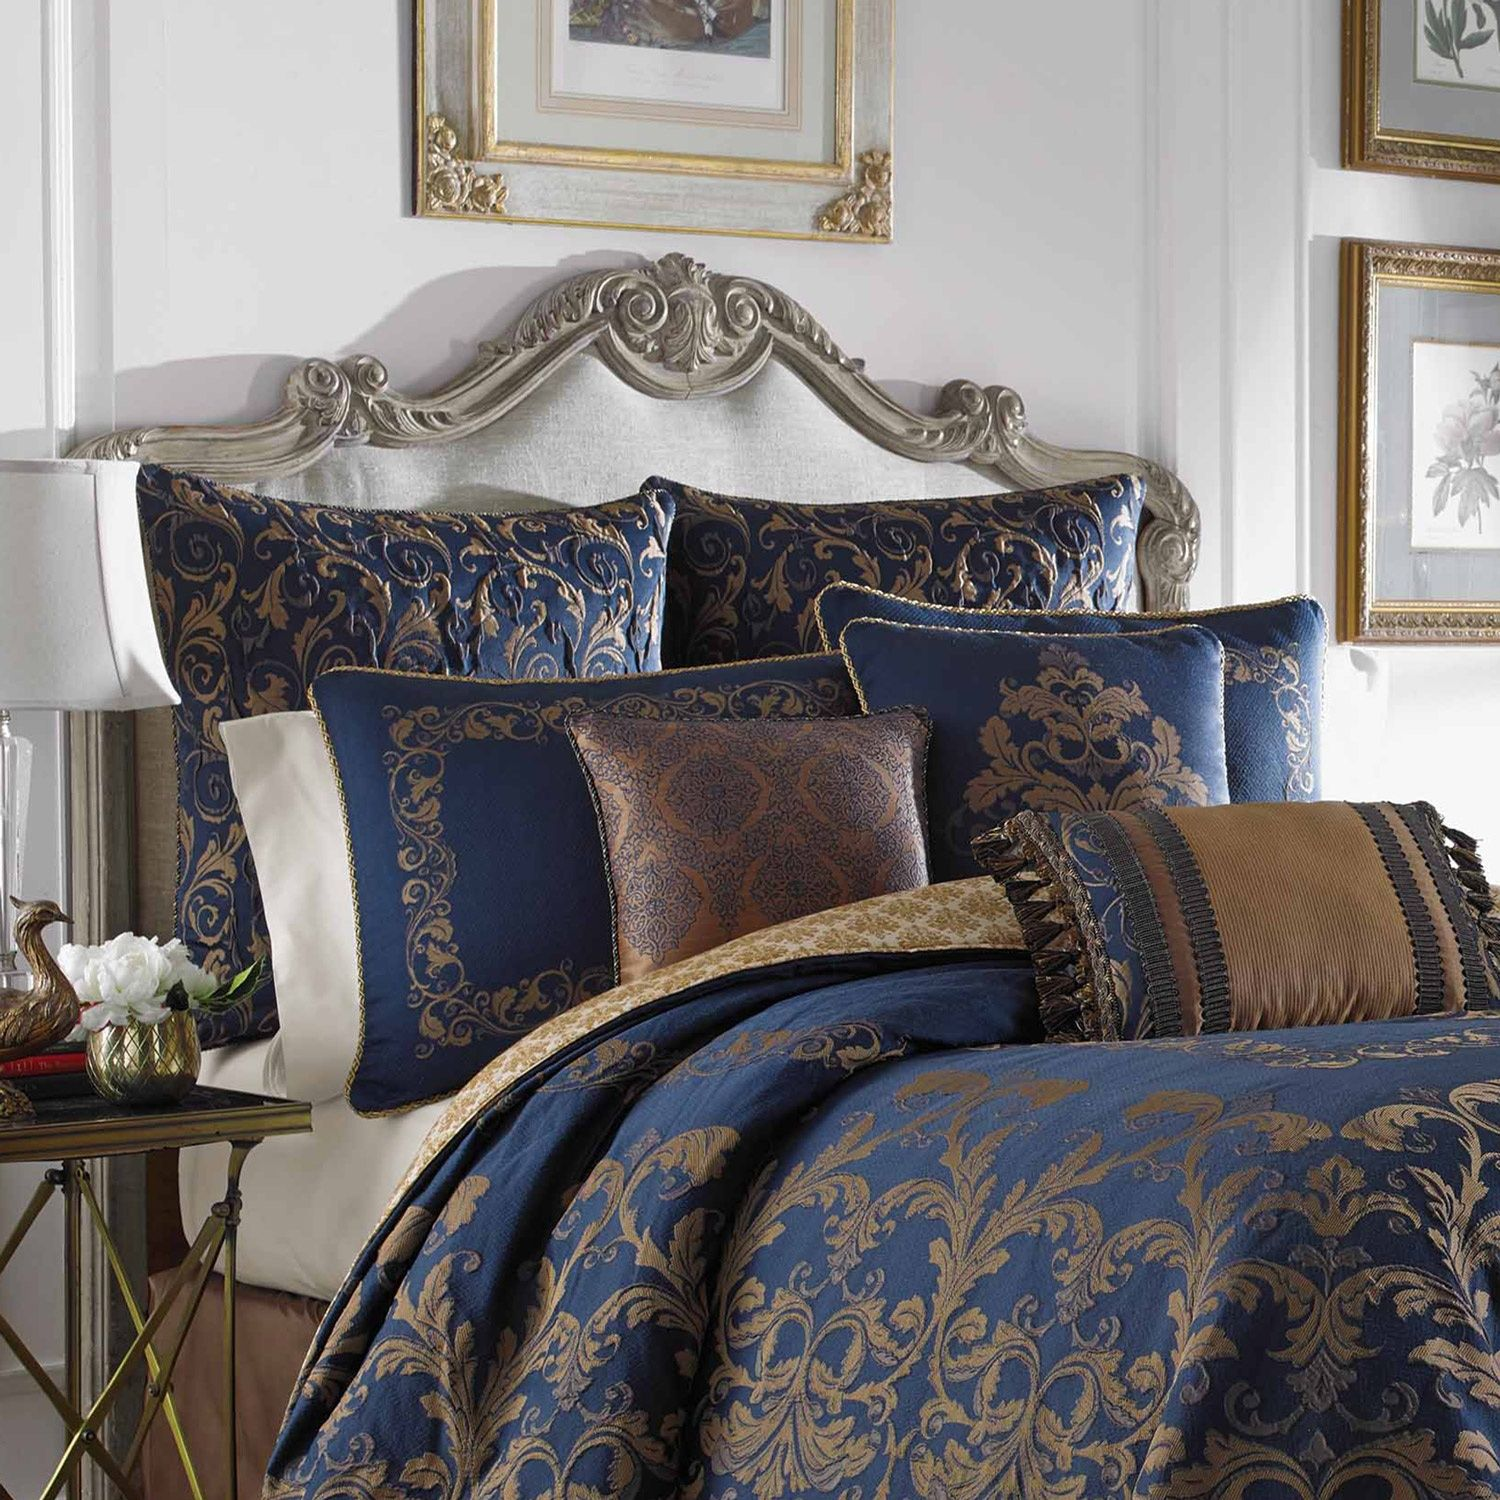 Fabulous blue comforter sets for bedroom furniture ideas blue comforter set blue and tan comforter sets navy blue comforter set queen